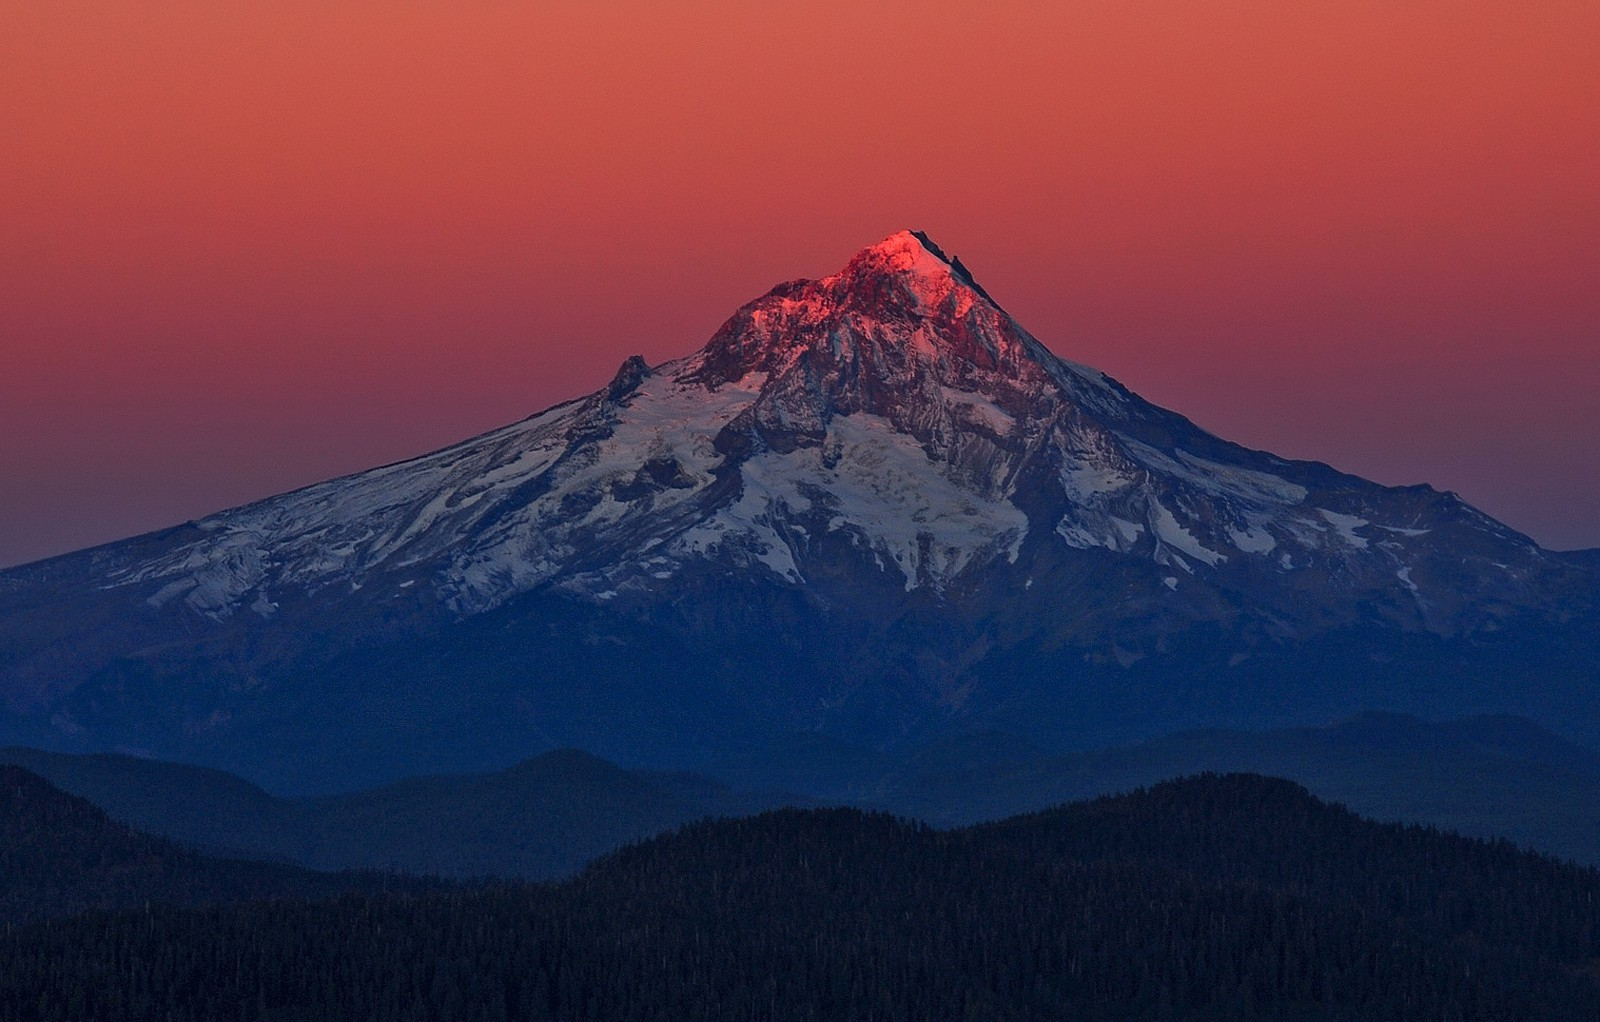 New Amazing Cars Wallpapers Nature Snowy Peak Volcano Mountain Oregon Forest